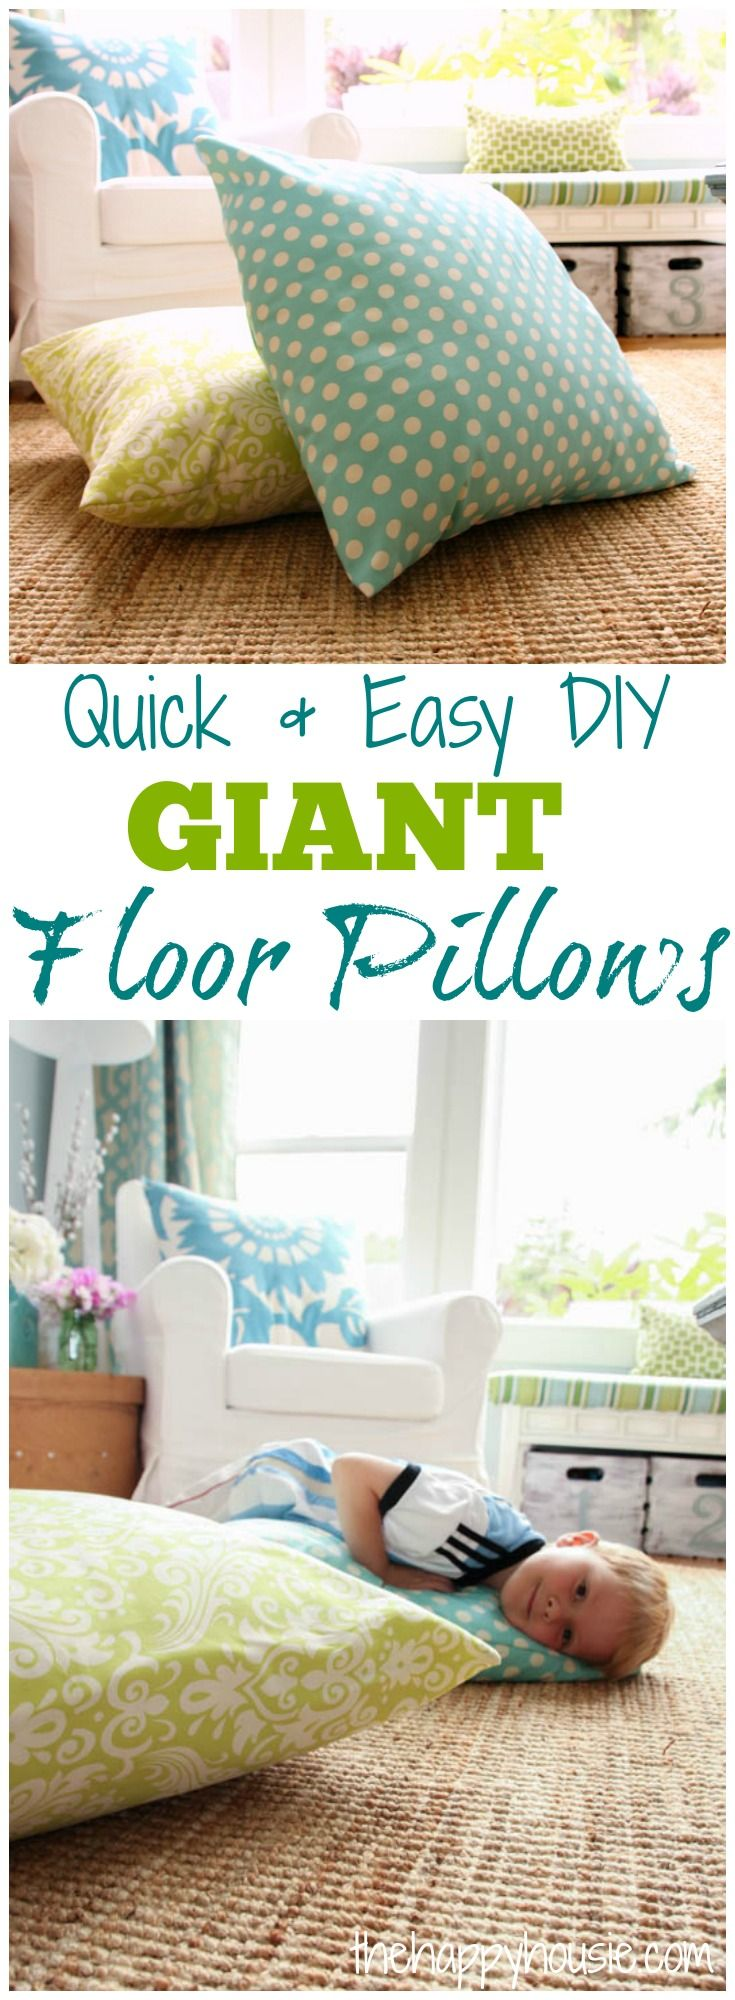 25 Best Ideas About Giant Floor Pillows On Pinterest Floor Pillows Floor